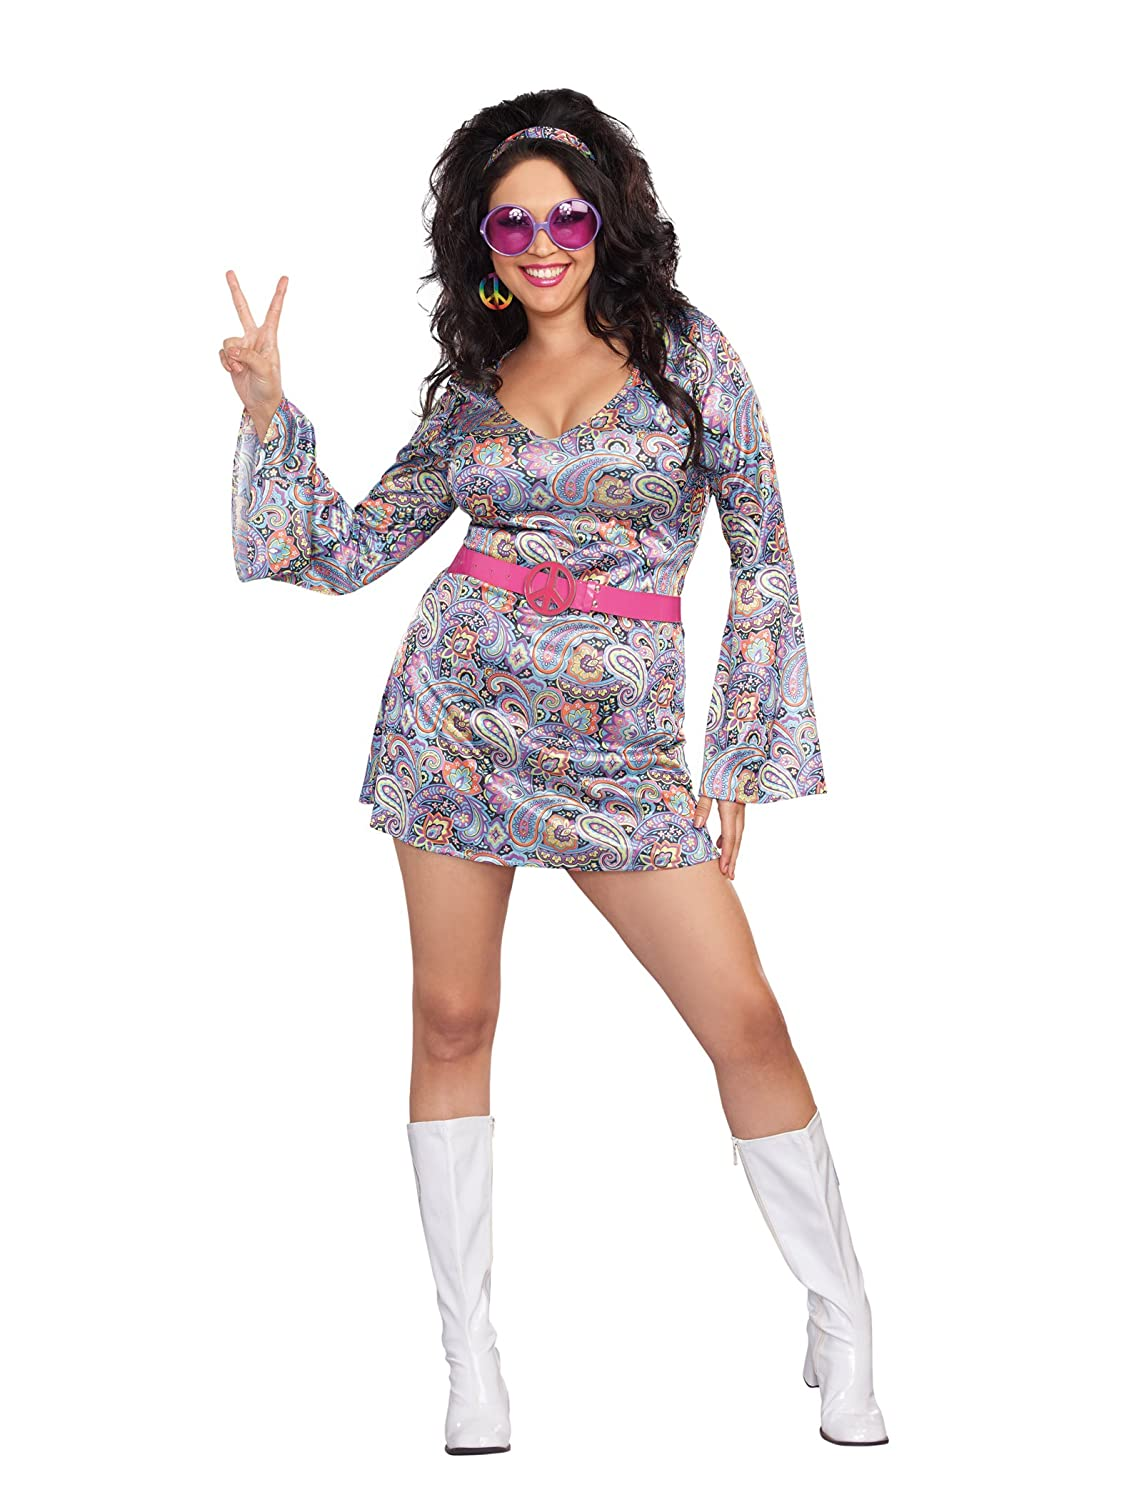 Hippie Costumes, Hippie Outfits Dreamgirl Womens Plus-Size Love-Fest Costume $21.94 AT vintagedancer.com